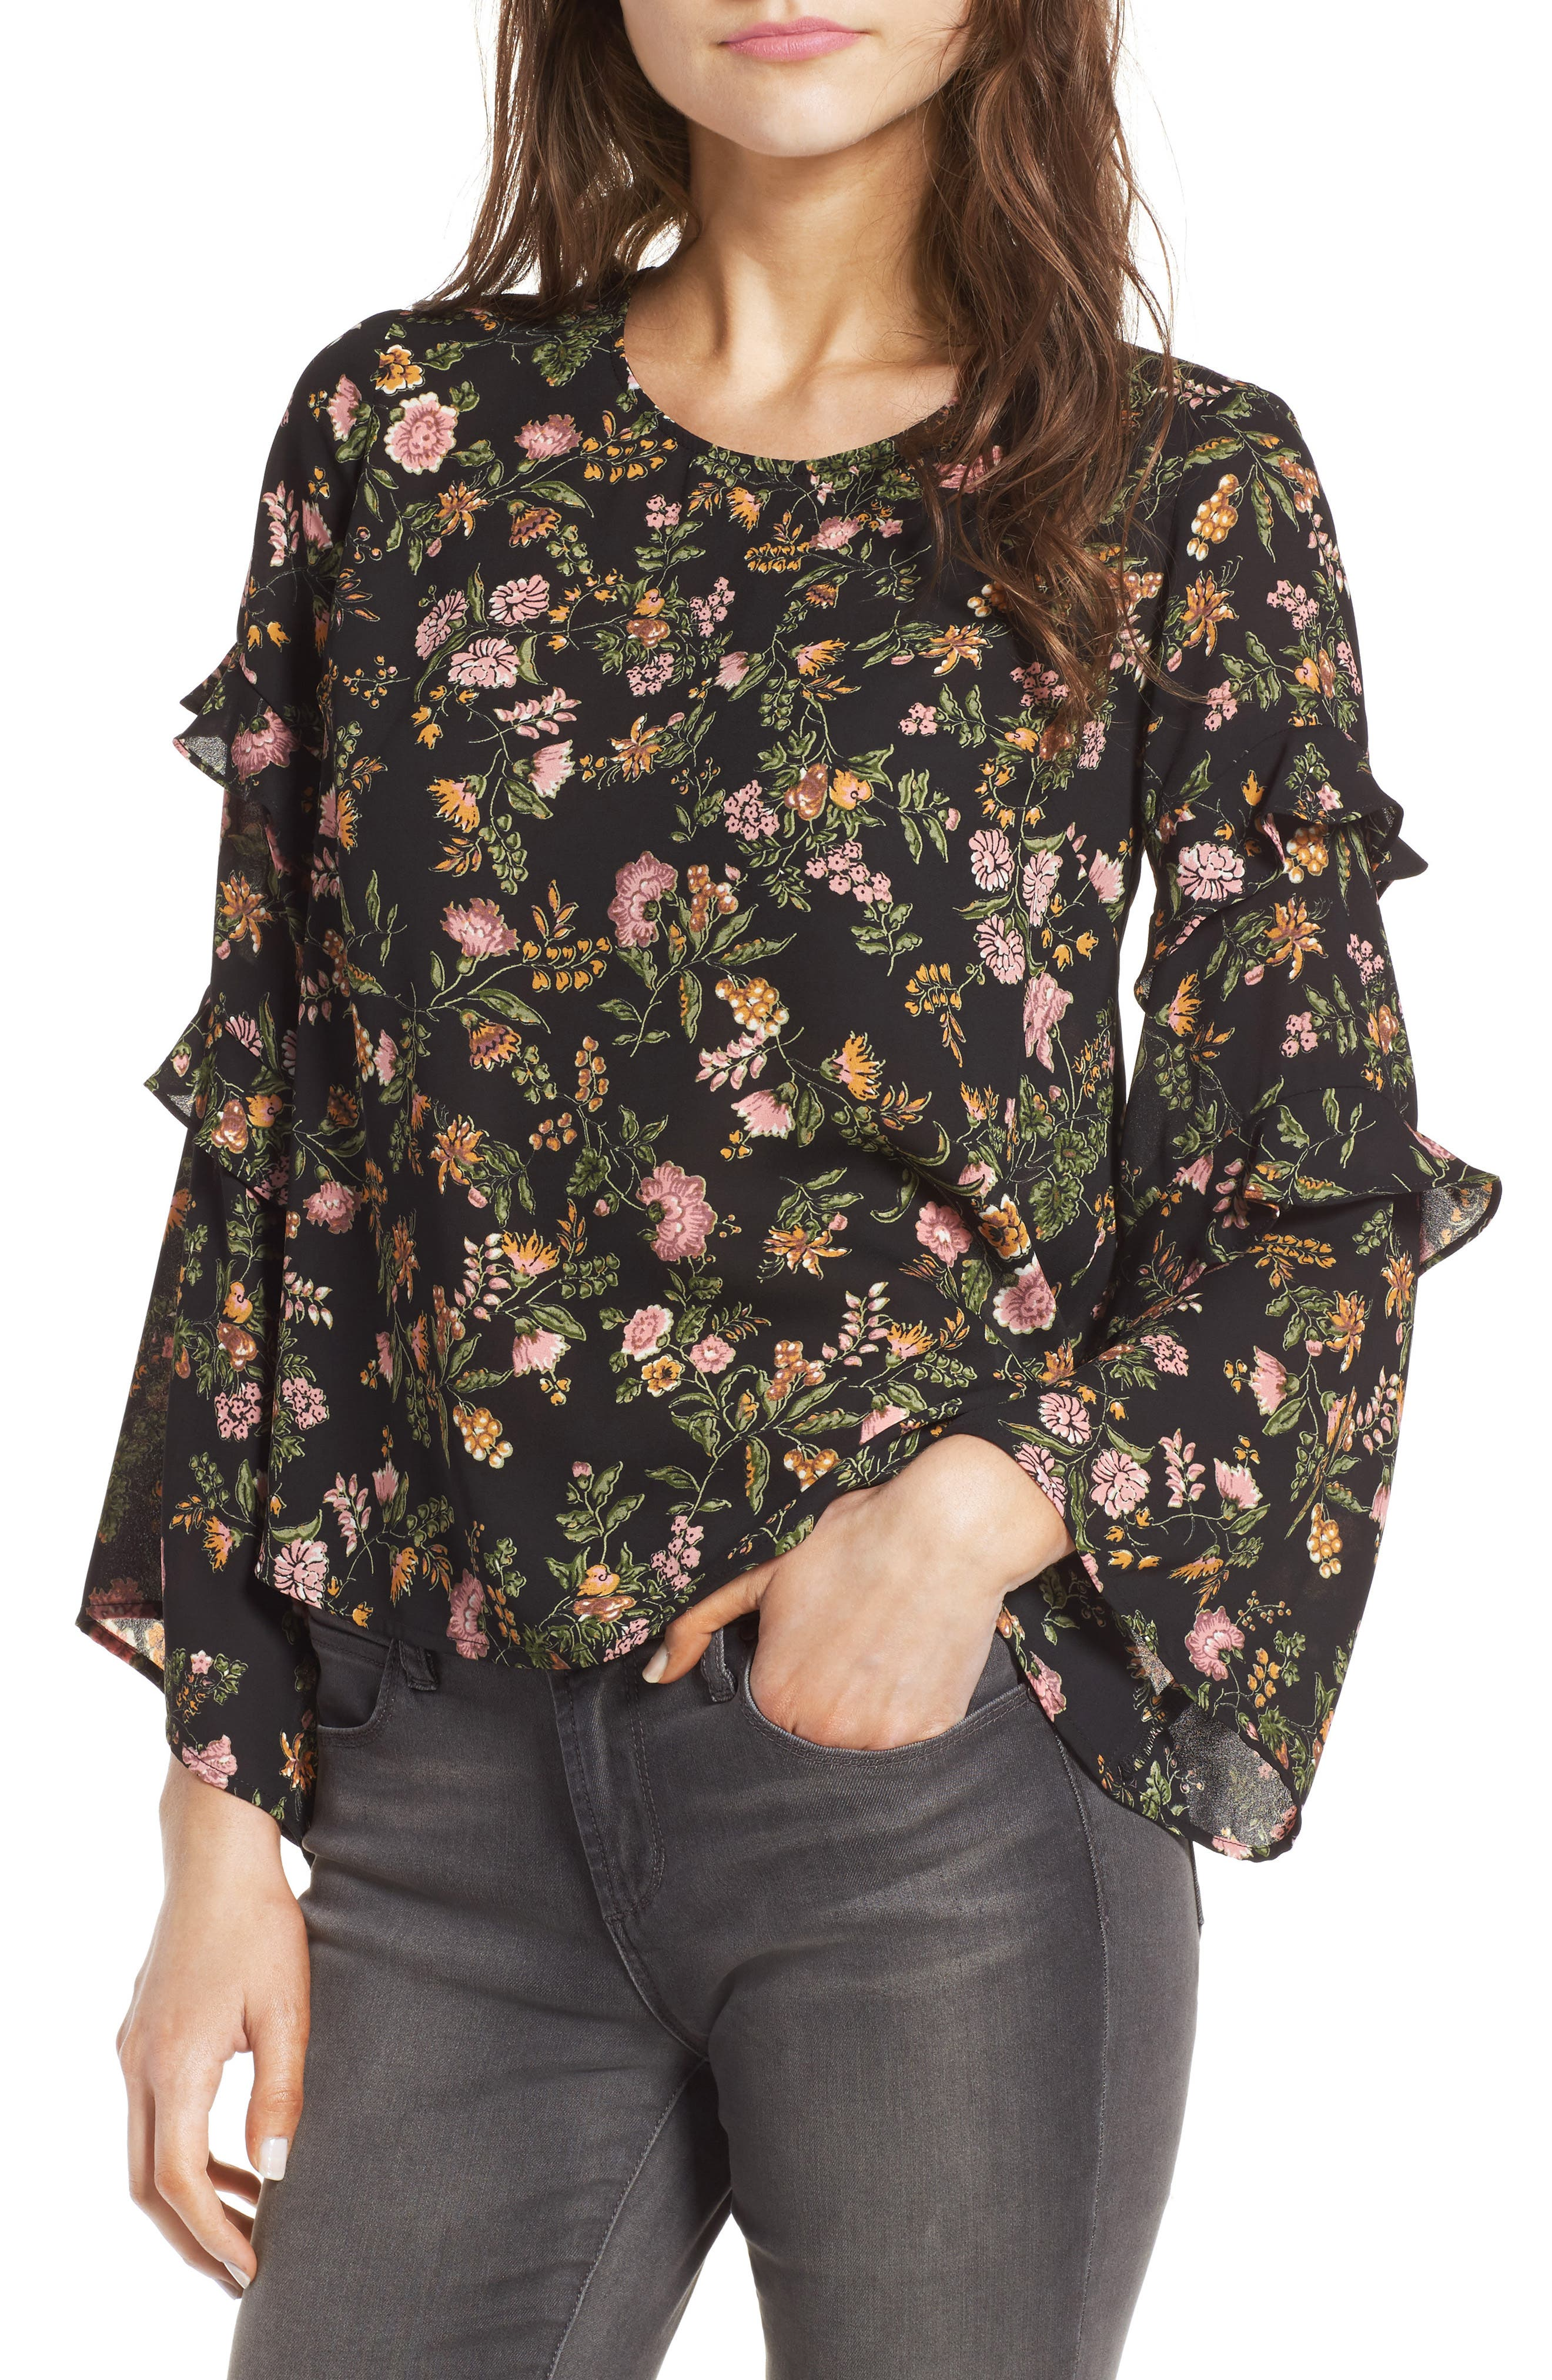 Alternate Image 1 Selected - Lush Ruffle Bell Sleeve Blouse